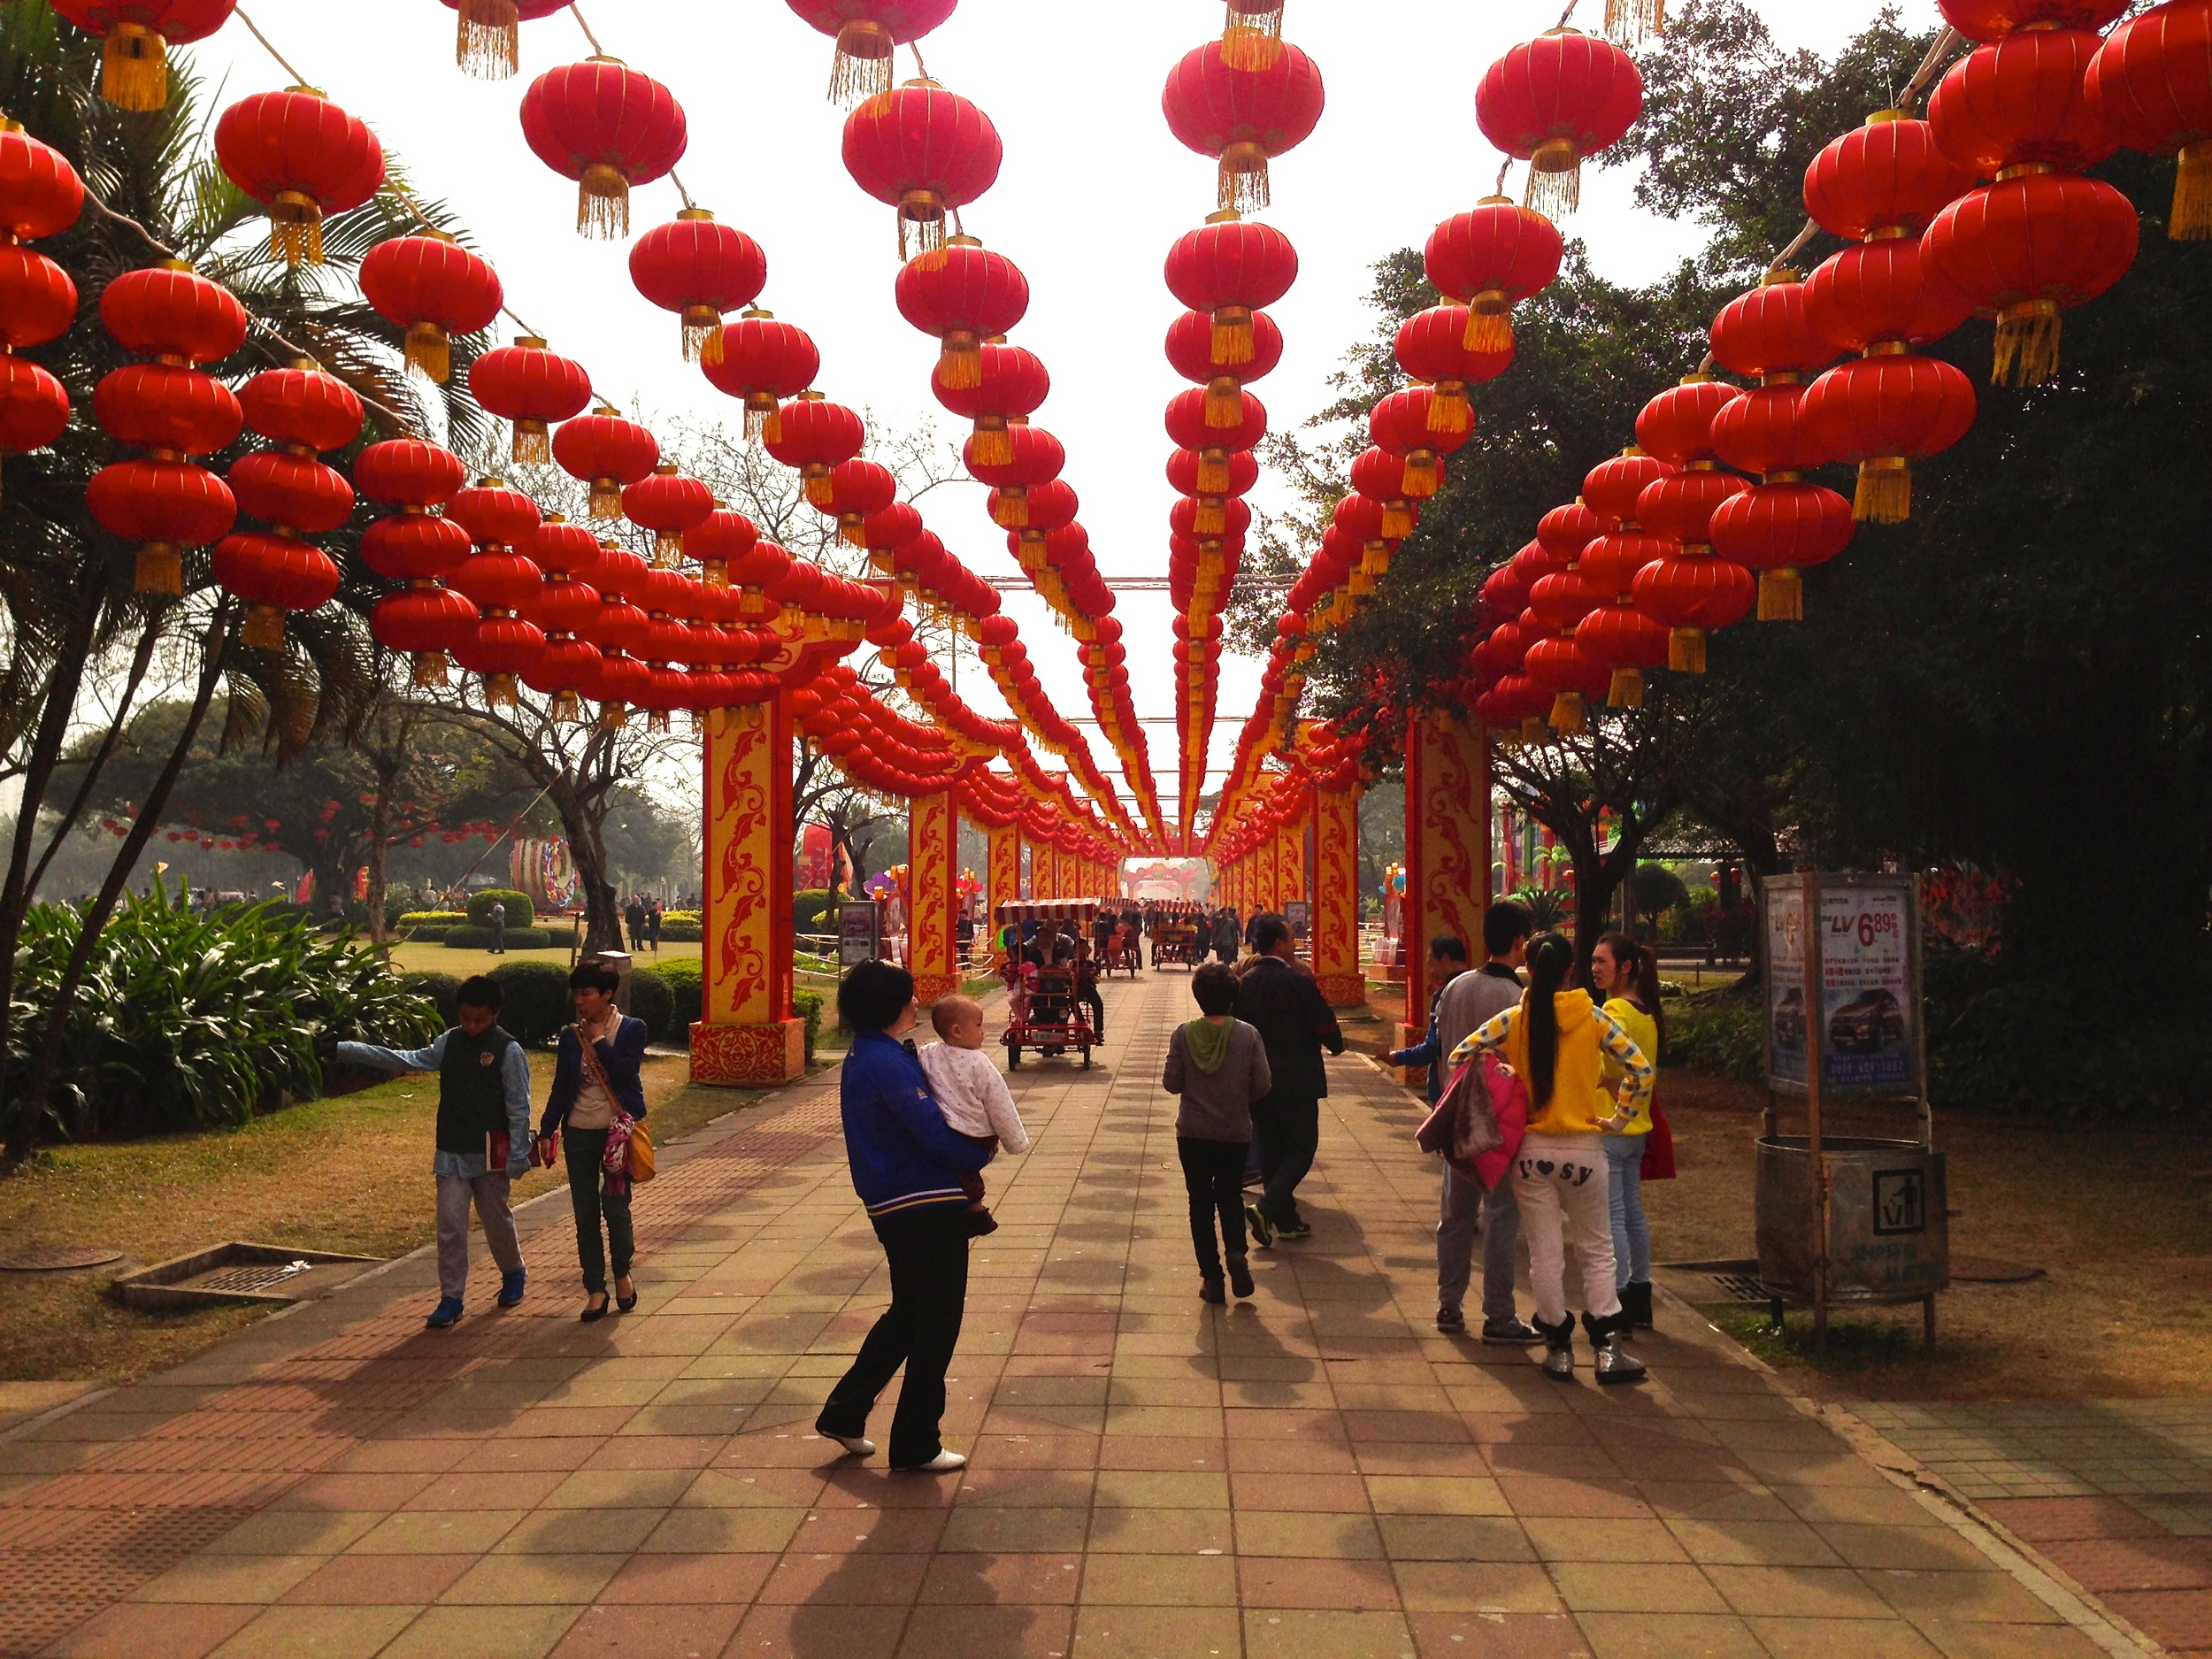 The year started with Chinese New Year in Haikou. It is something everyone should experience once, though be sure to bring earplugs and avoid the crowds at RT Mart the week before!